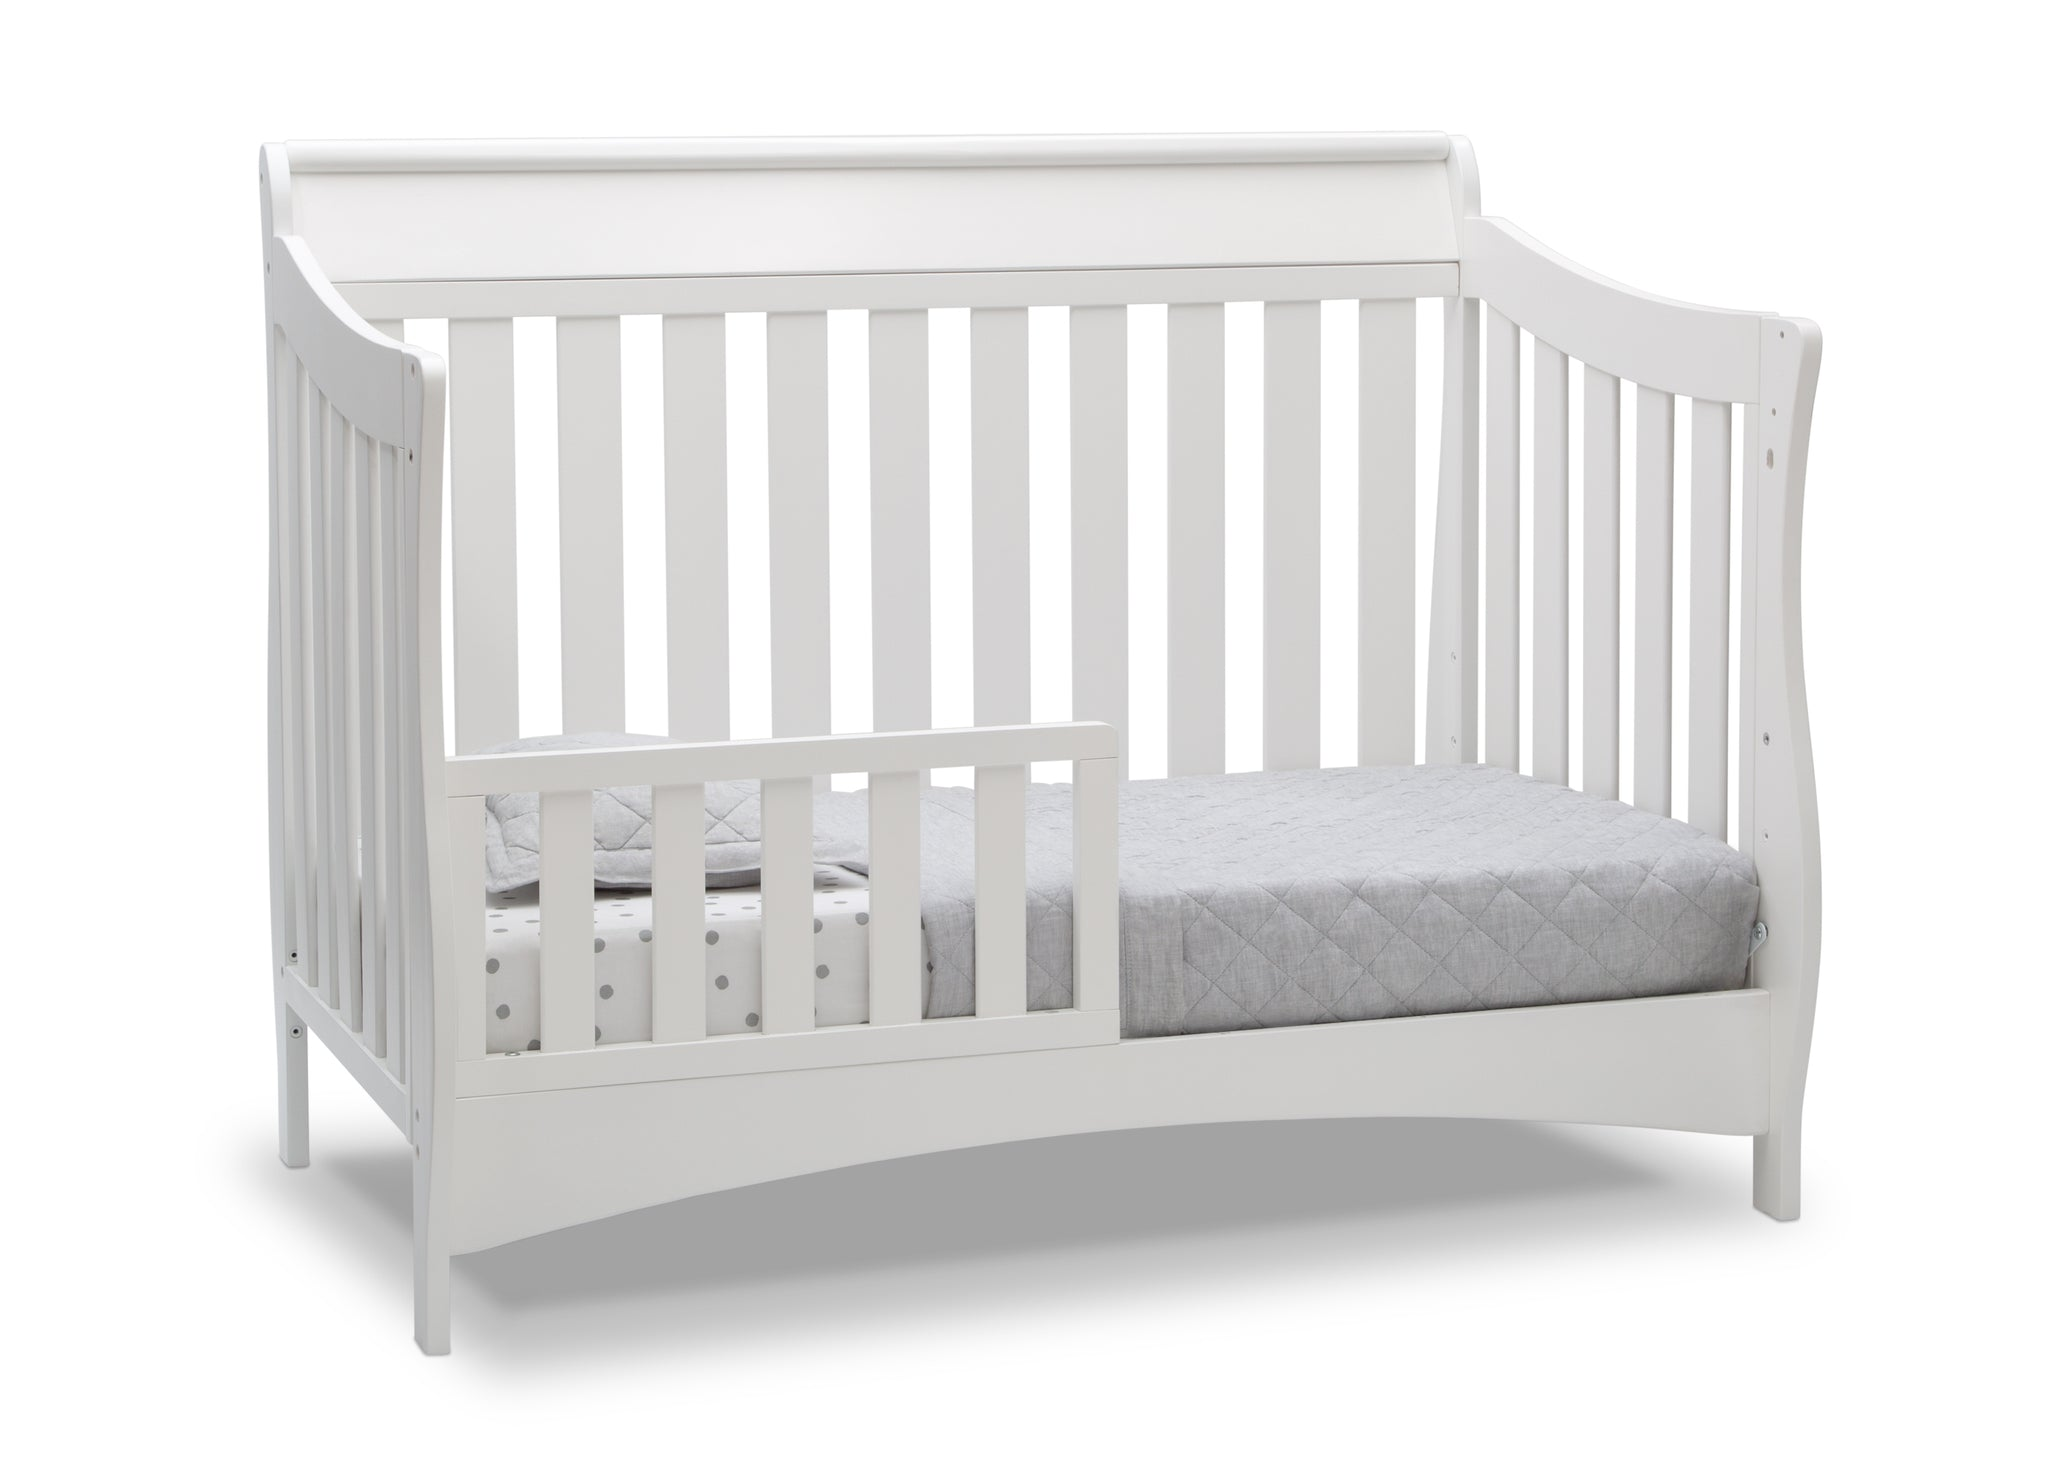 Delta Children Bianca White (130) Bentley S Series Deluxe 6-in-1 Convertible Crib, Right Toddler Bed Silo View